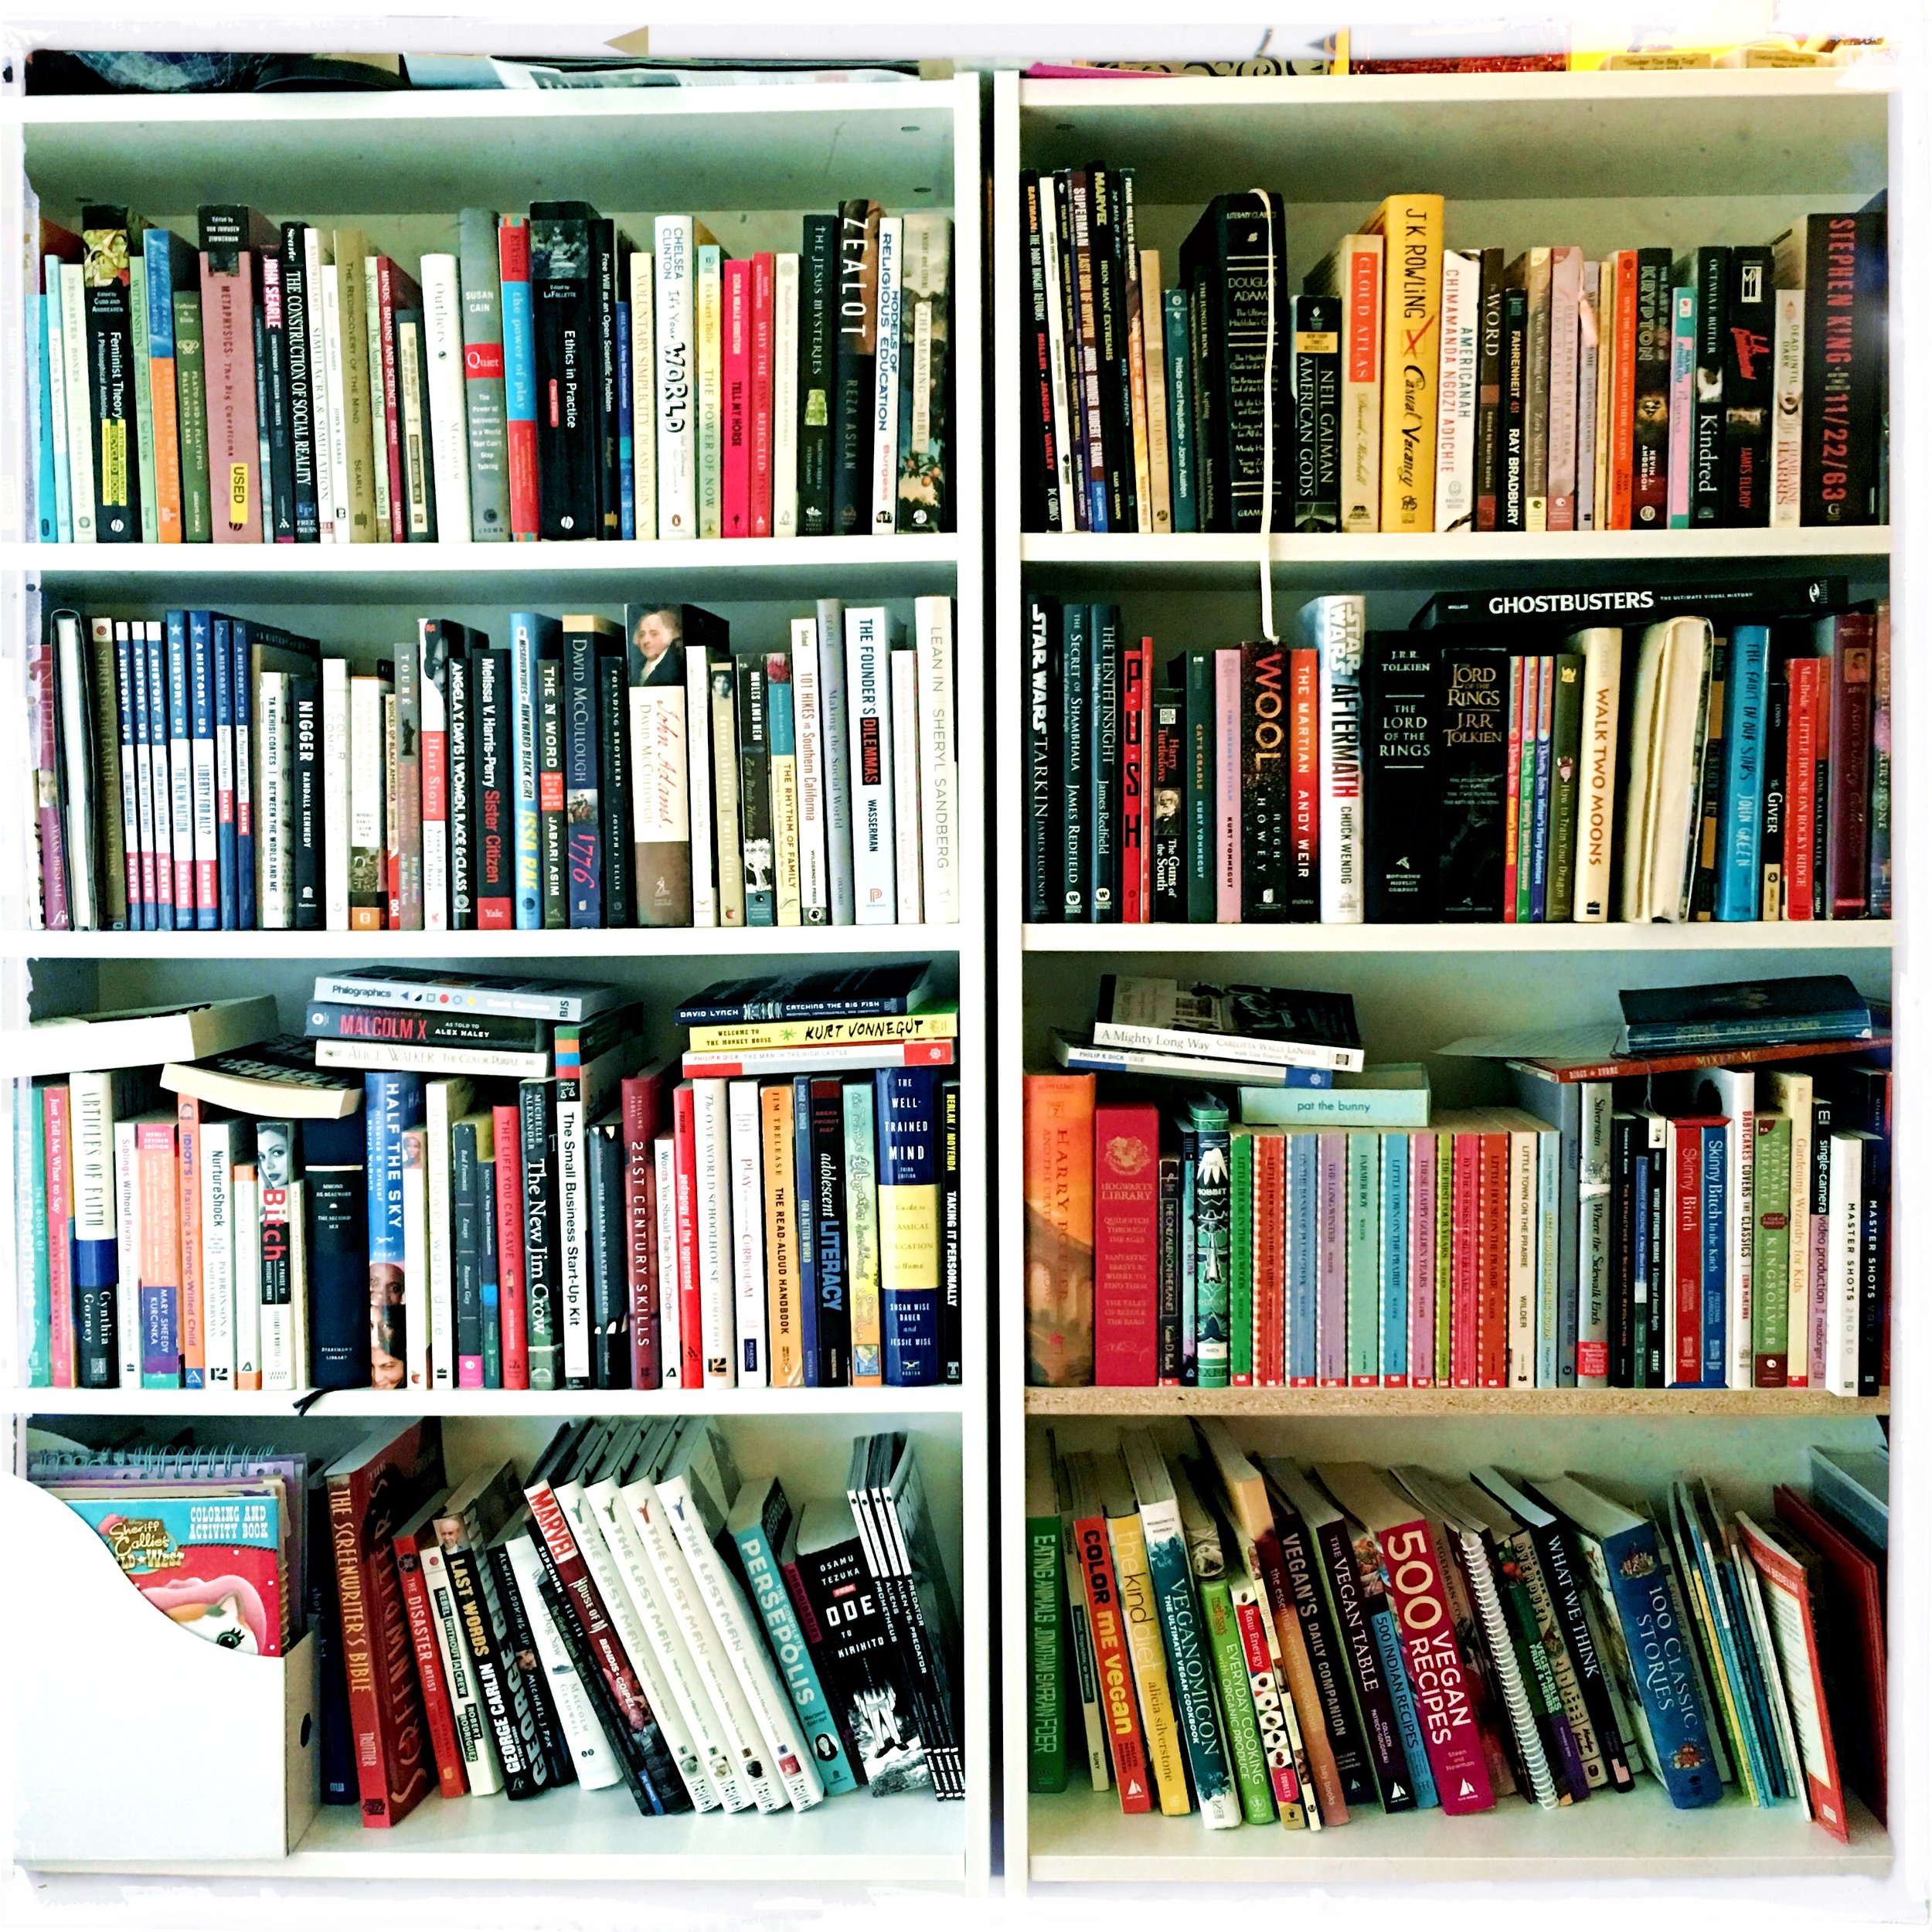 Part of my collection before I started Black & Bookish